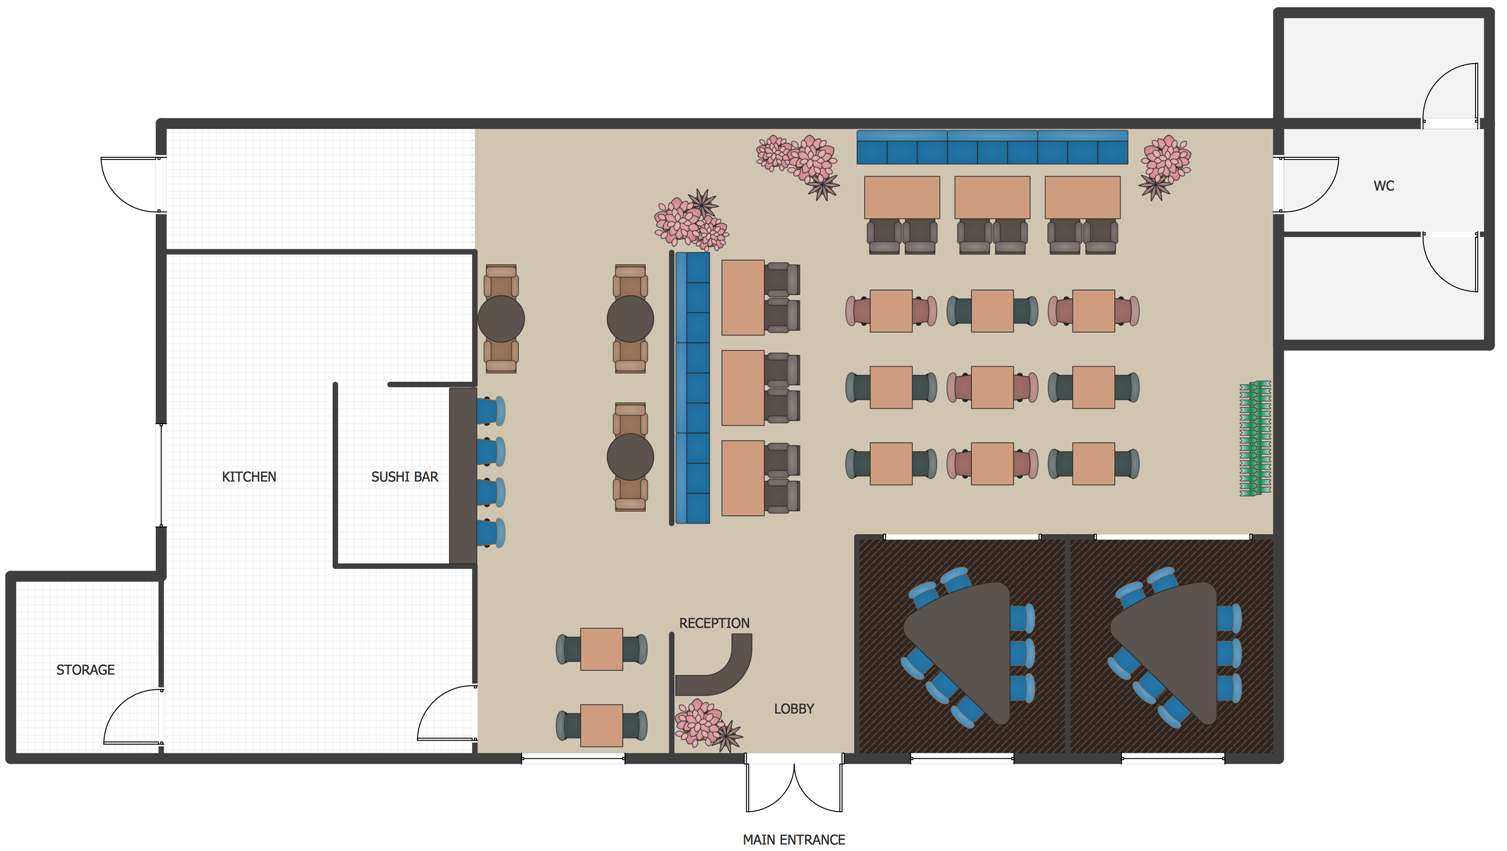 Restaurant Floor Plans Software Design Your Restaurant And Layouts In Minutes With Conceptdraw Draw Restaurant Floor Plan